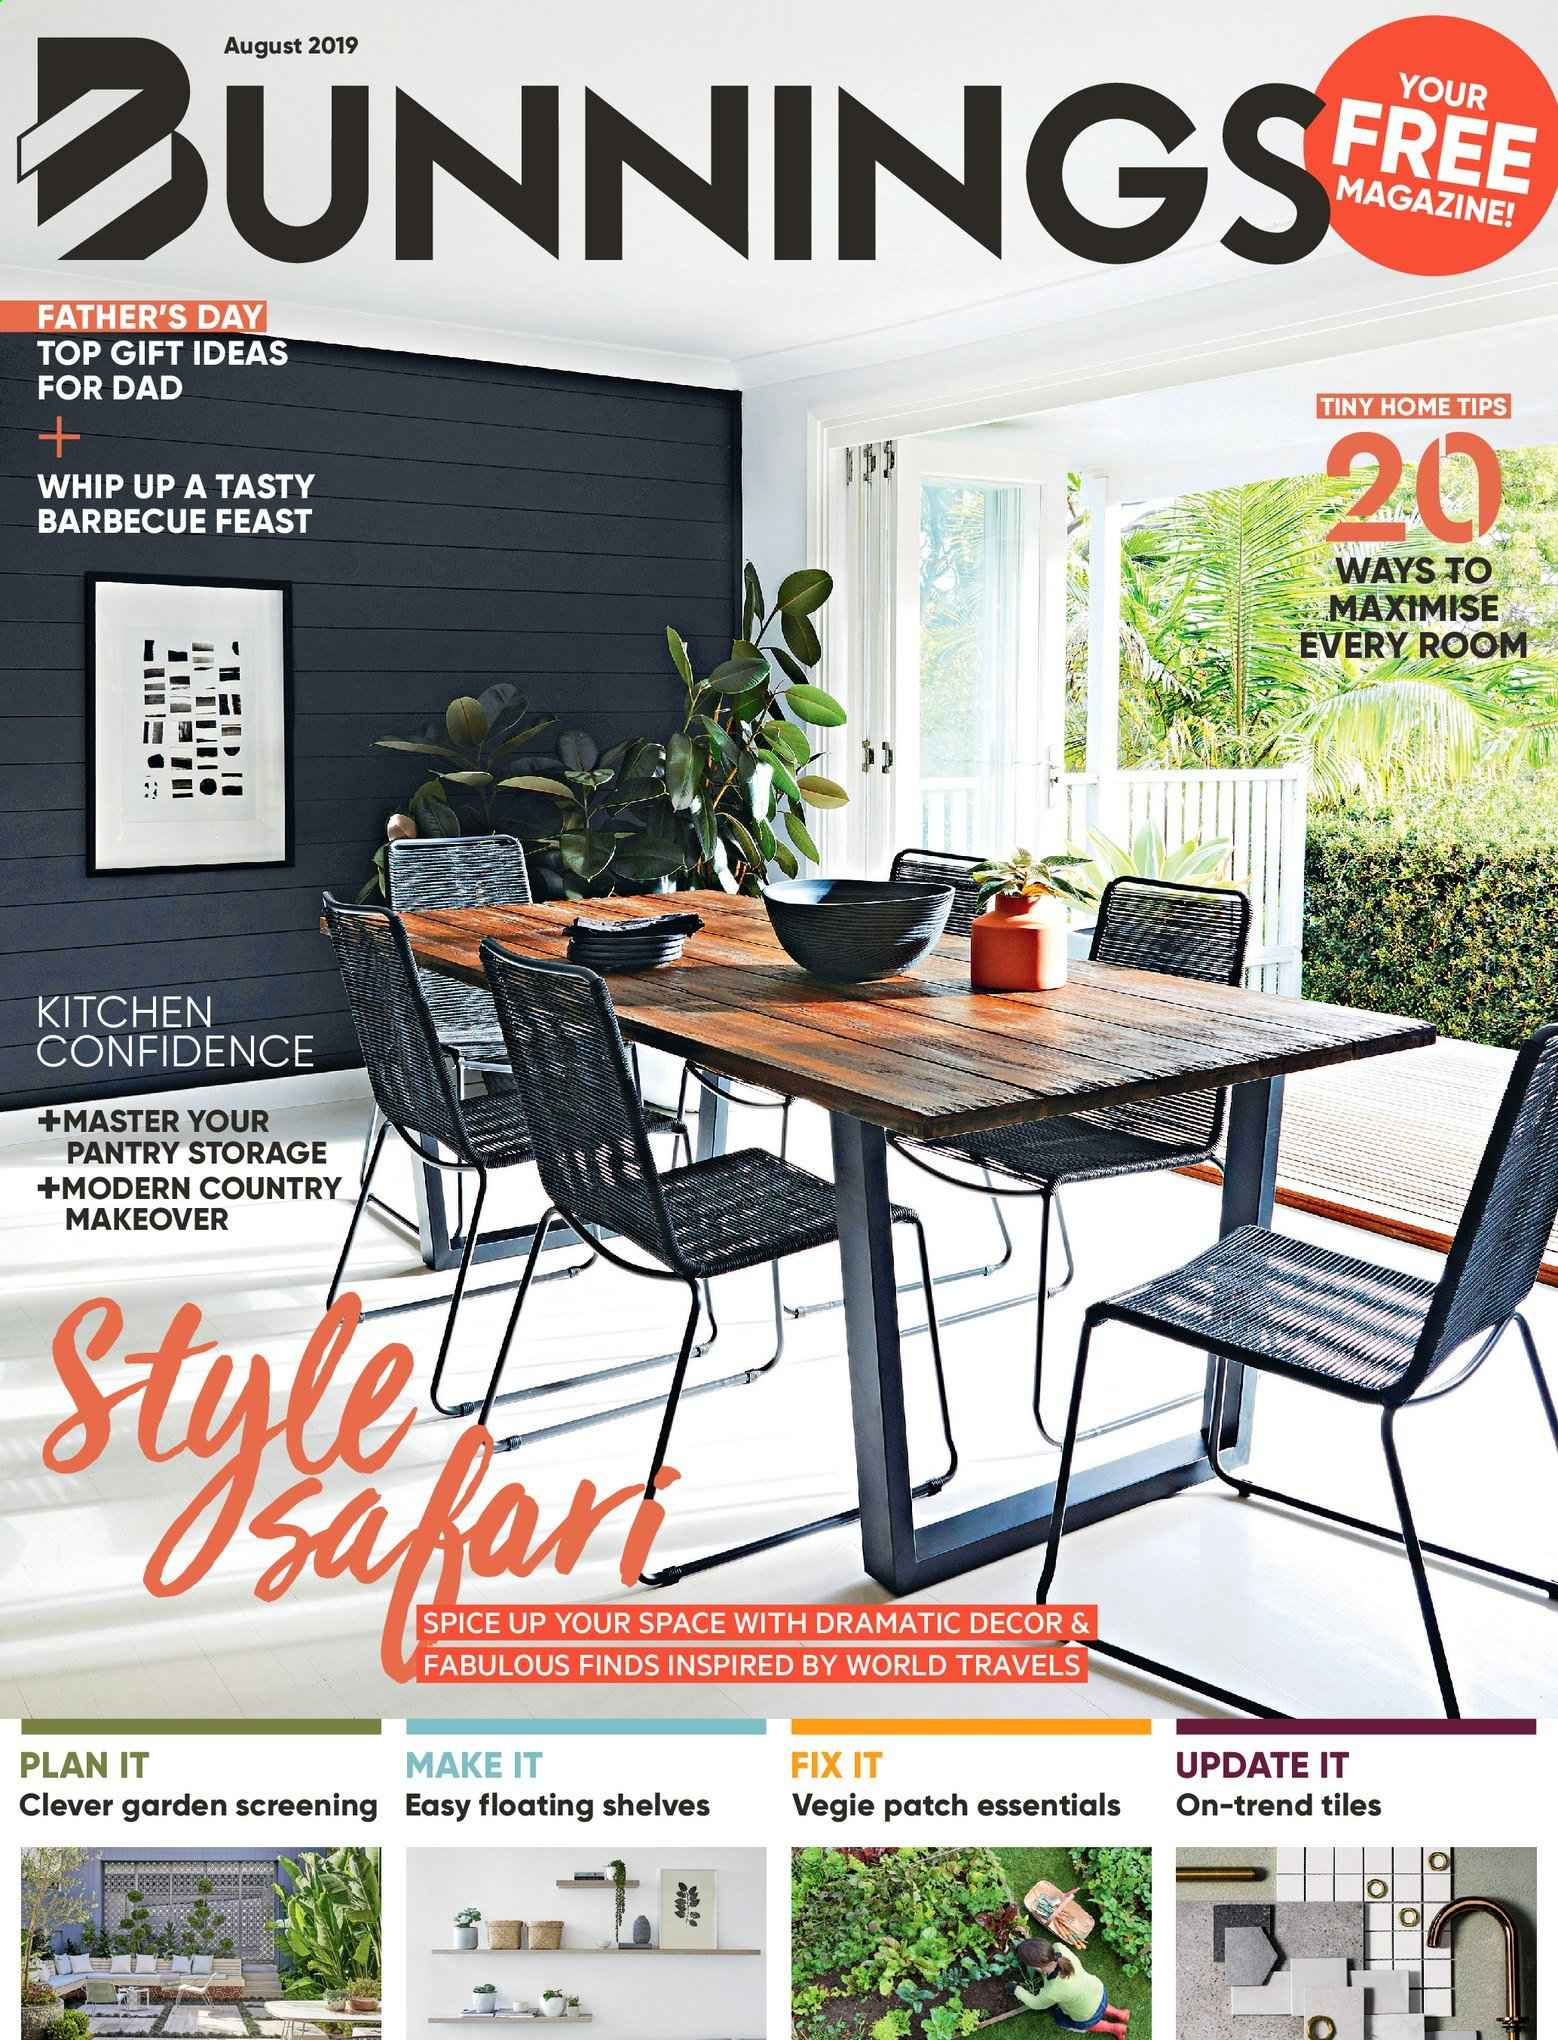 Bunnings Warehouse catalogue and weekly specials 1 8 2019